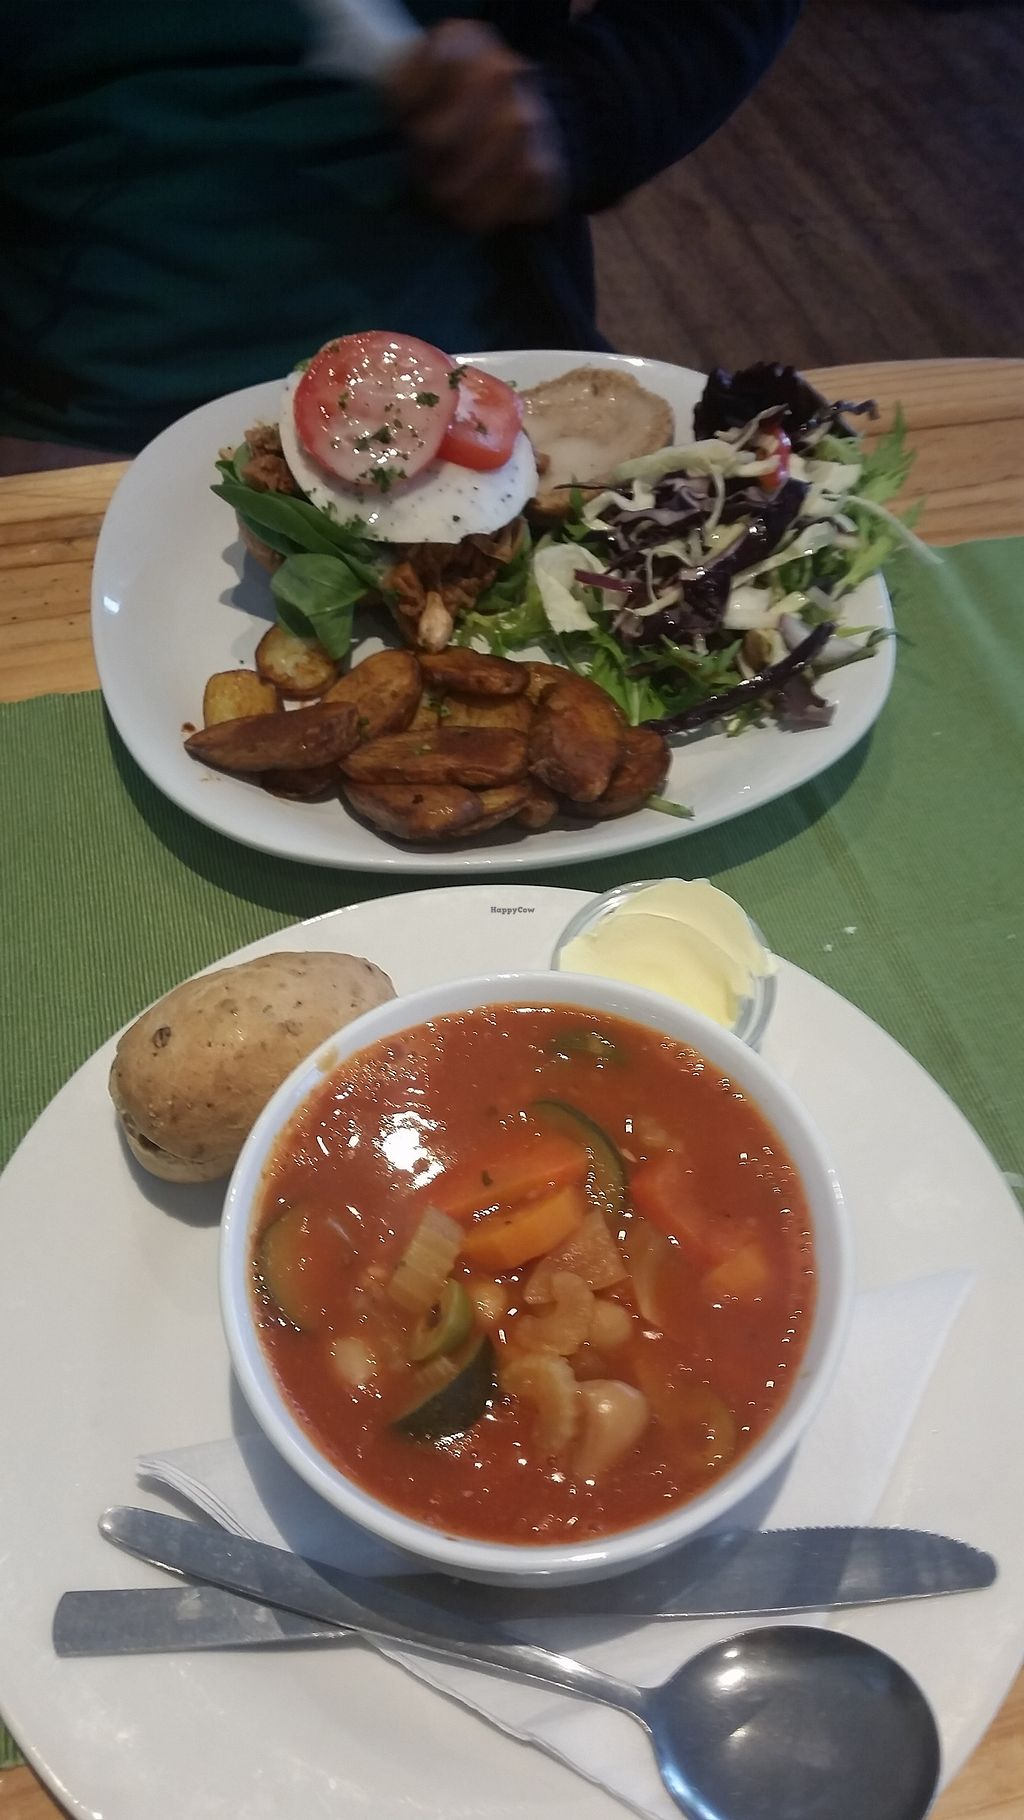 """Photo of Caffi Pura  by <a href=""""/members/profile/konlish"""">konlish</a> <br/>Butternut Soup and pulled Jackfruit burger special <br/> June 23, 2017  - <a href='/contact/abuse/image/77095/272691'>Report</a>"""